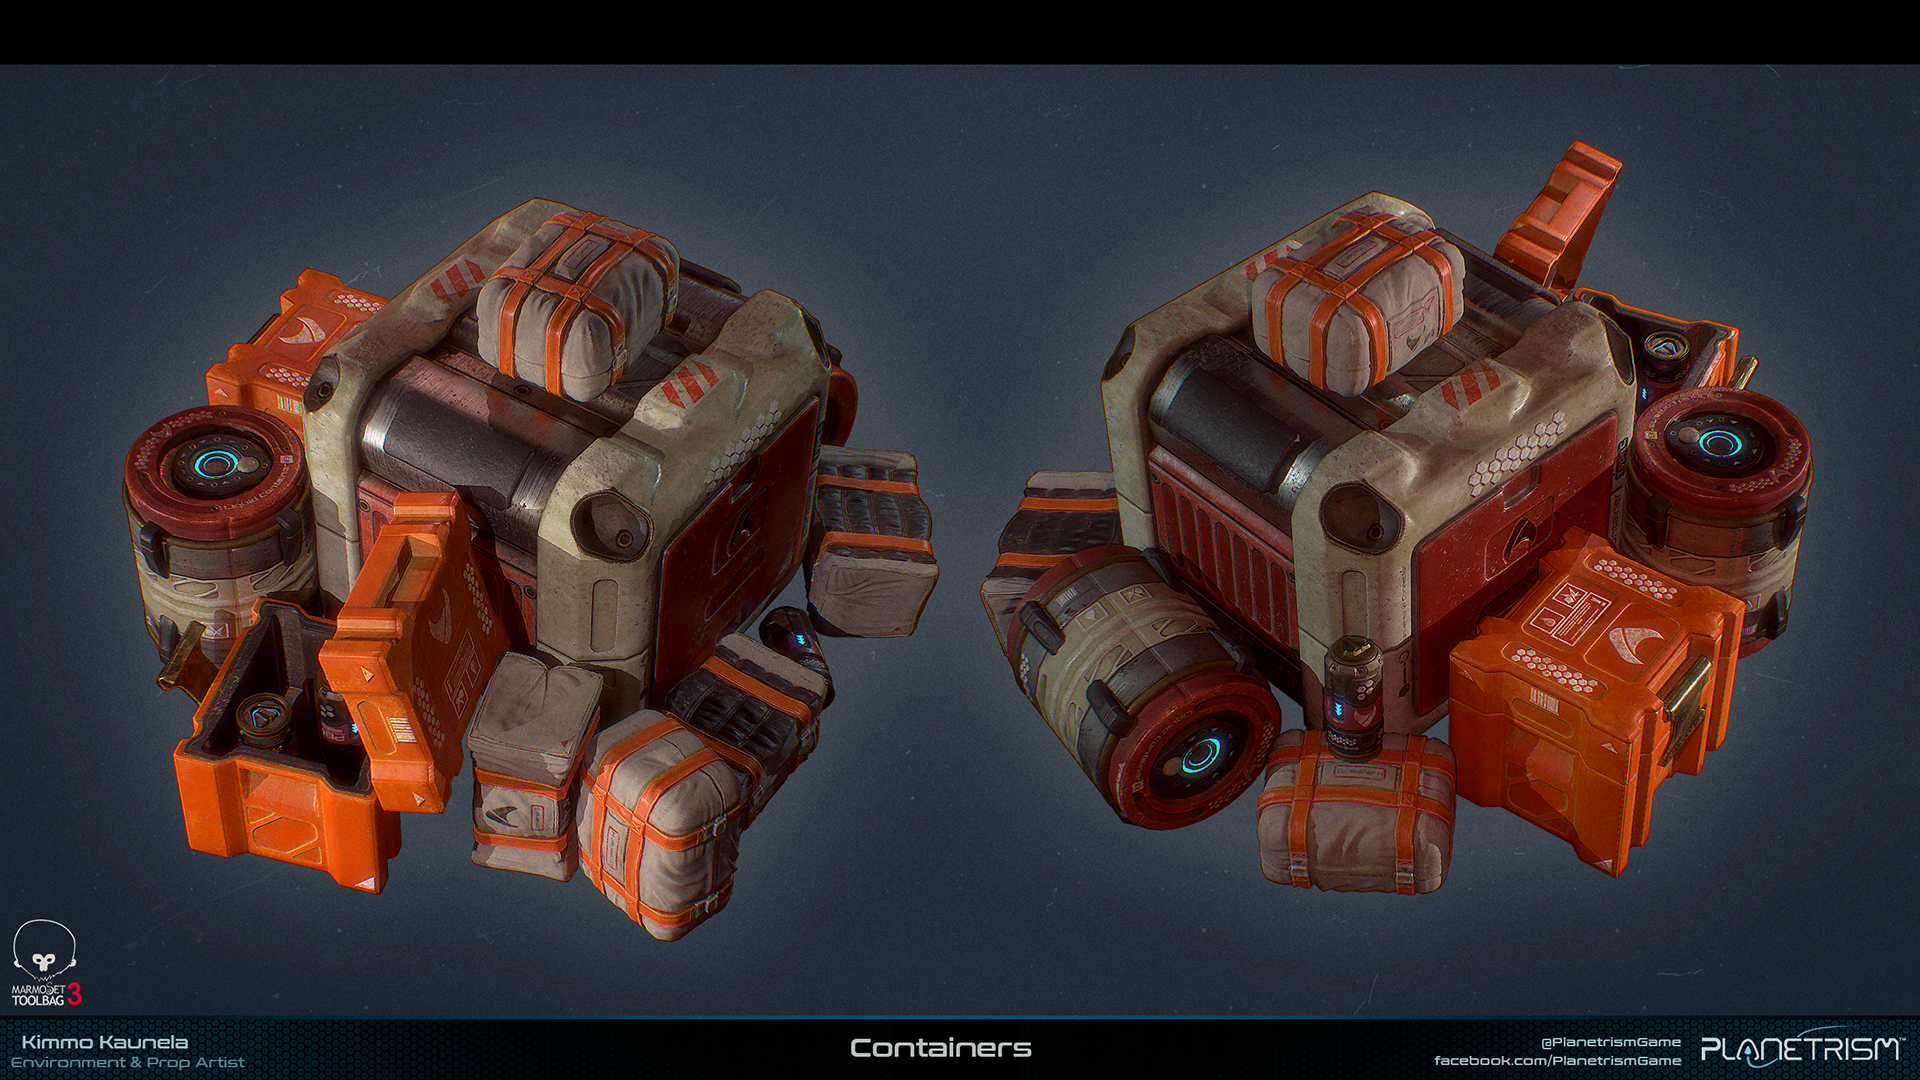 Planetrism - Containers